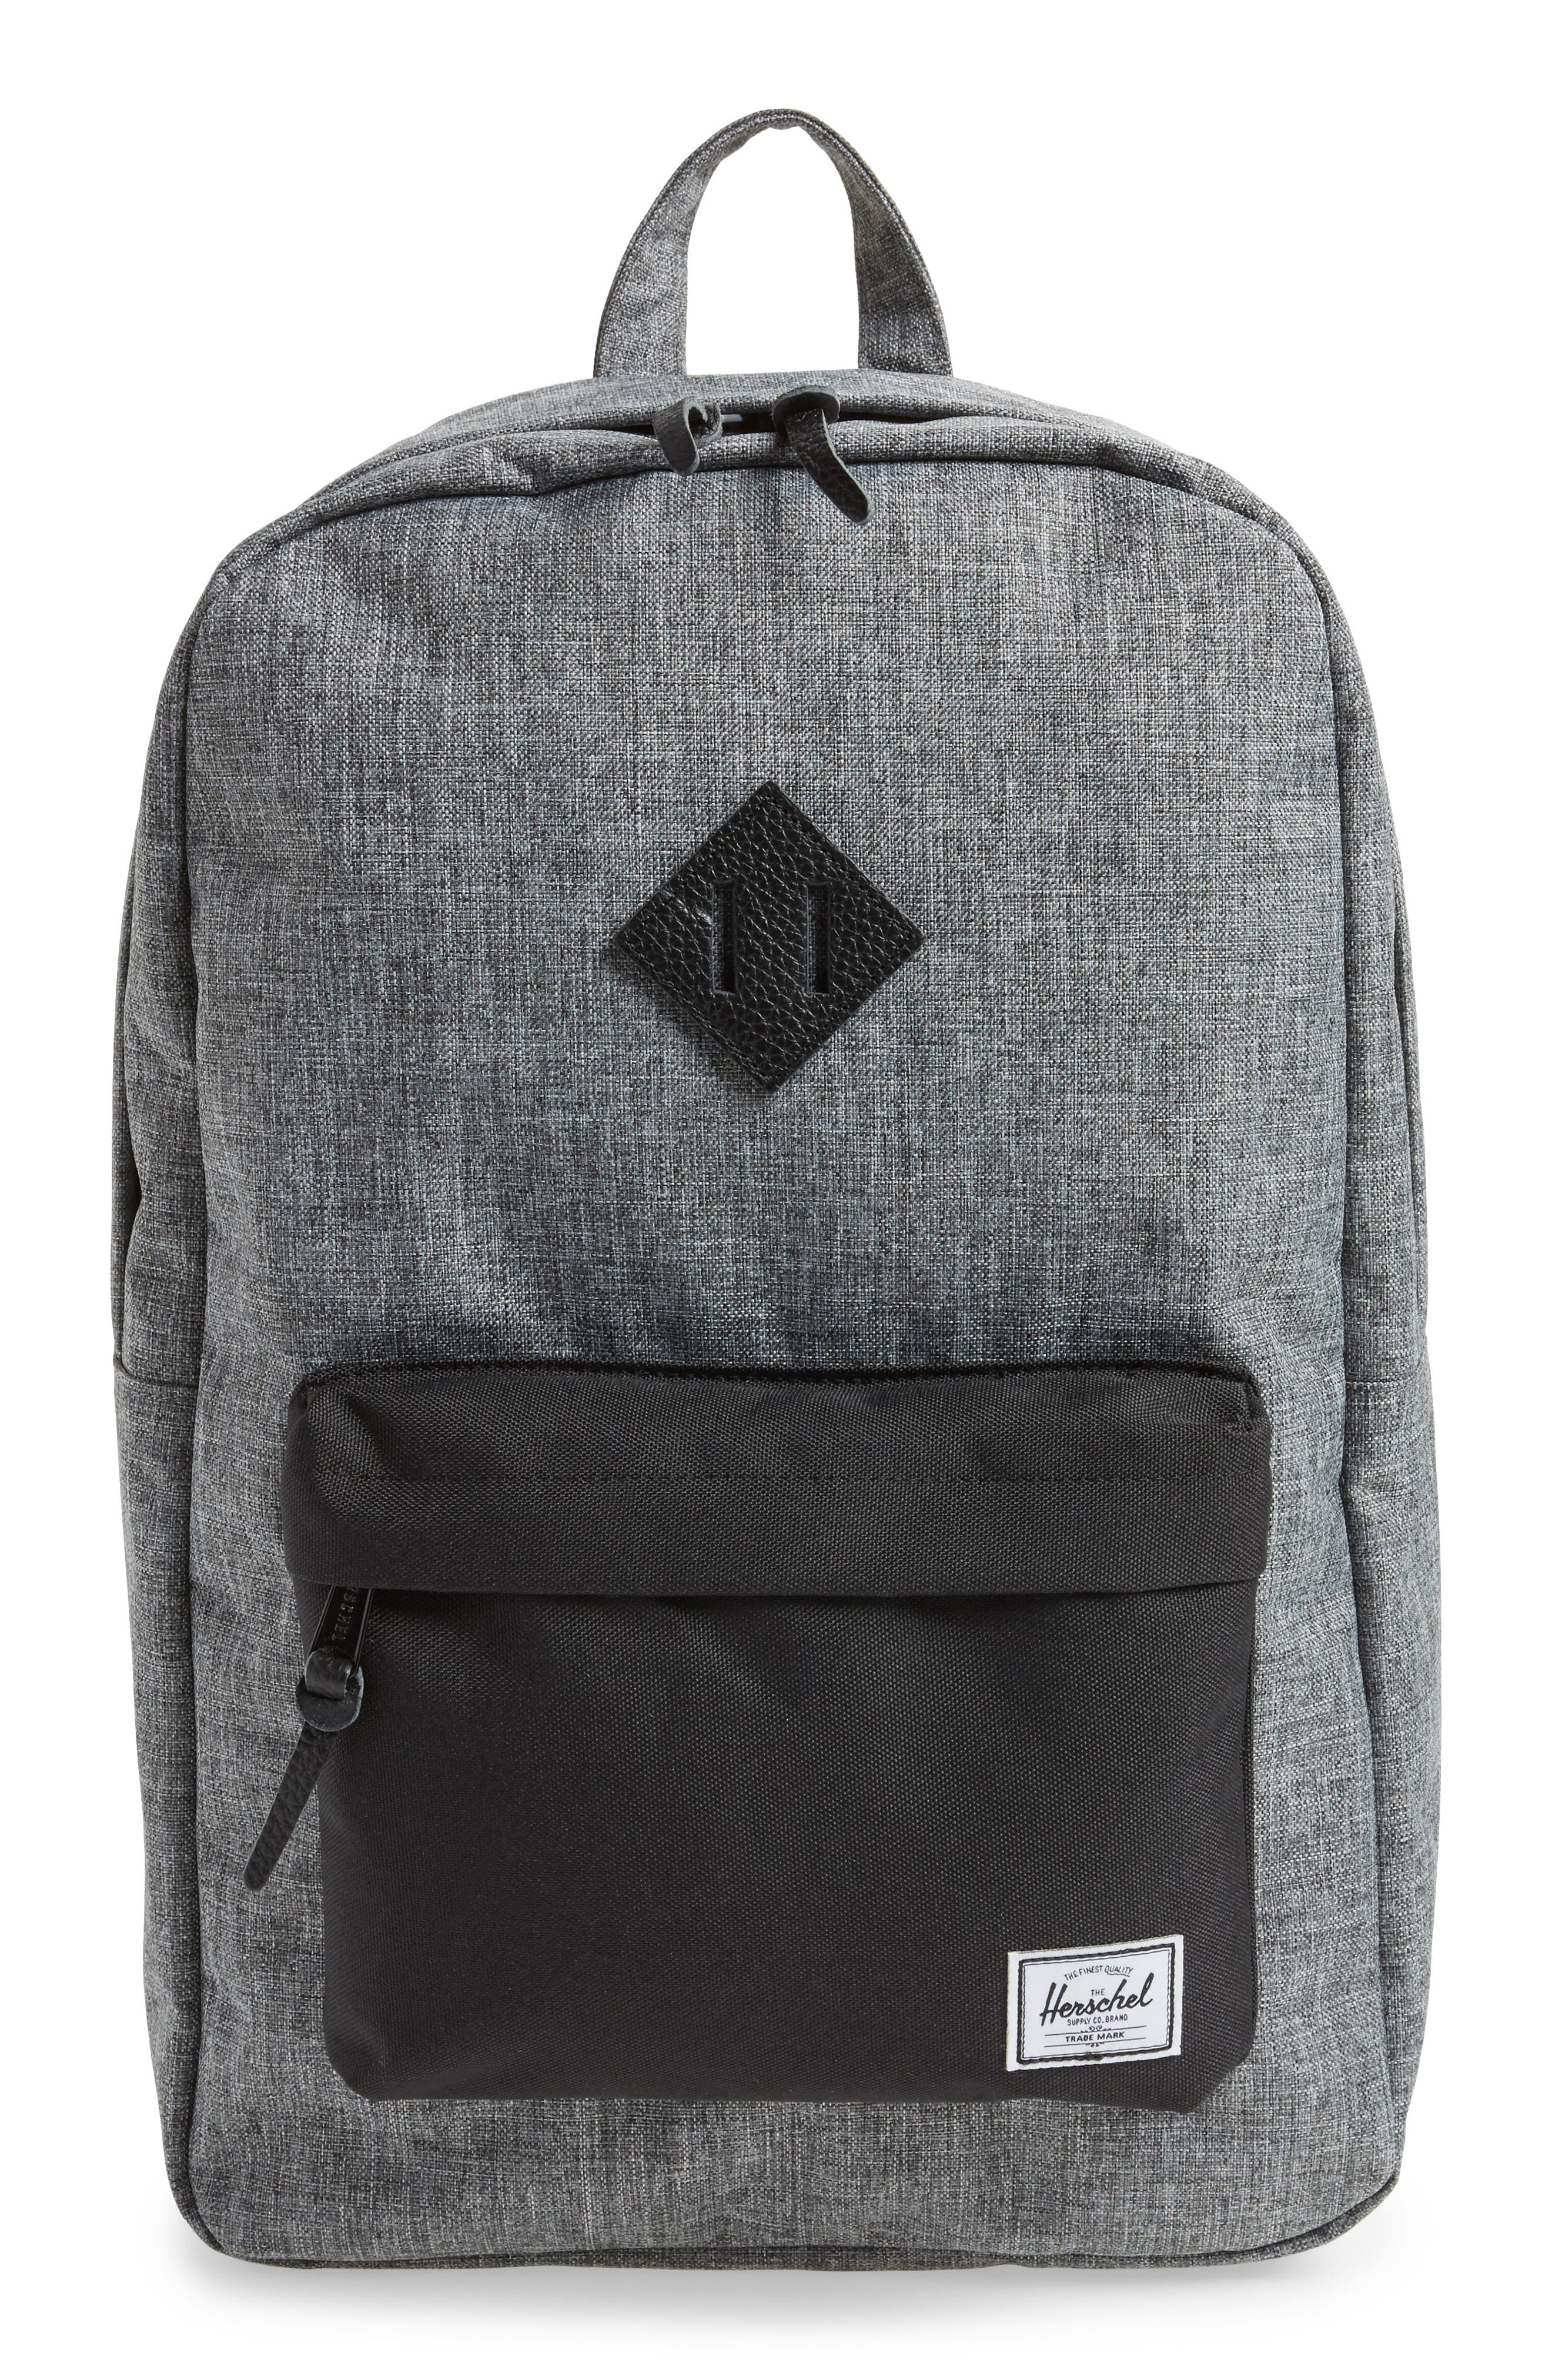 NEW RBCK-133 HERSCHEL SUPPLY CO SETTlLEMENT MID BRICK RED BACKPACK